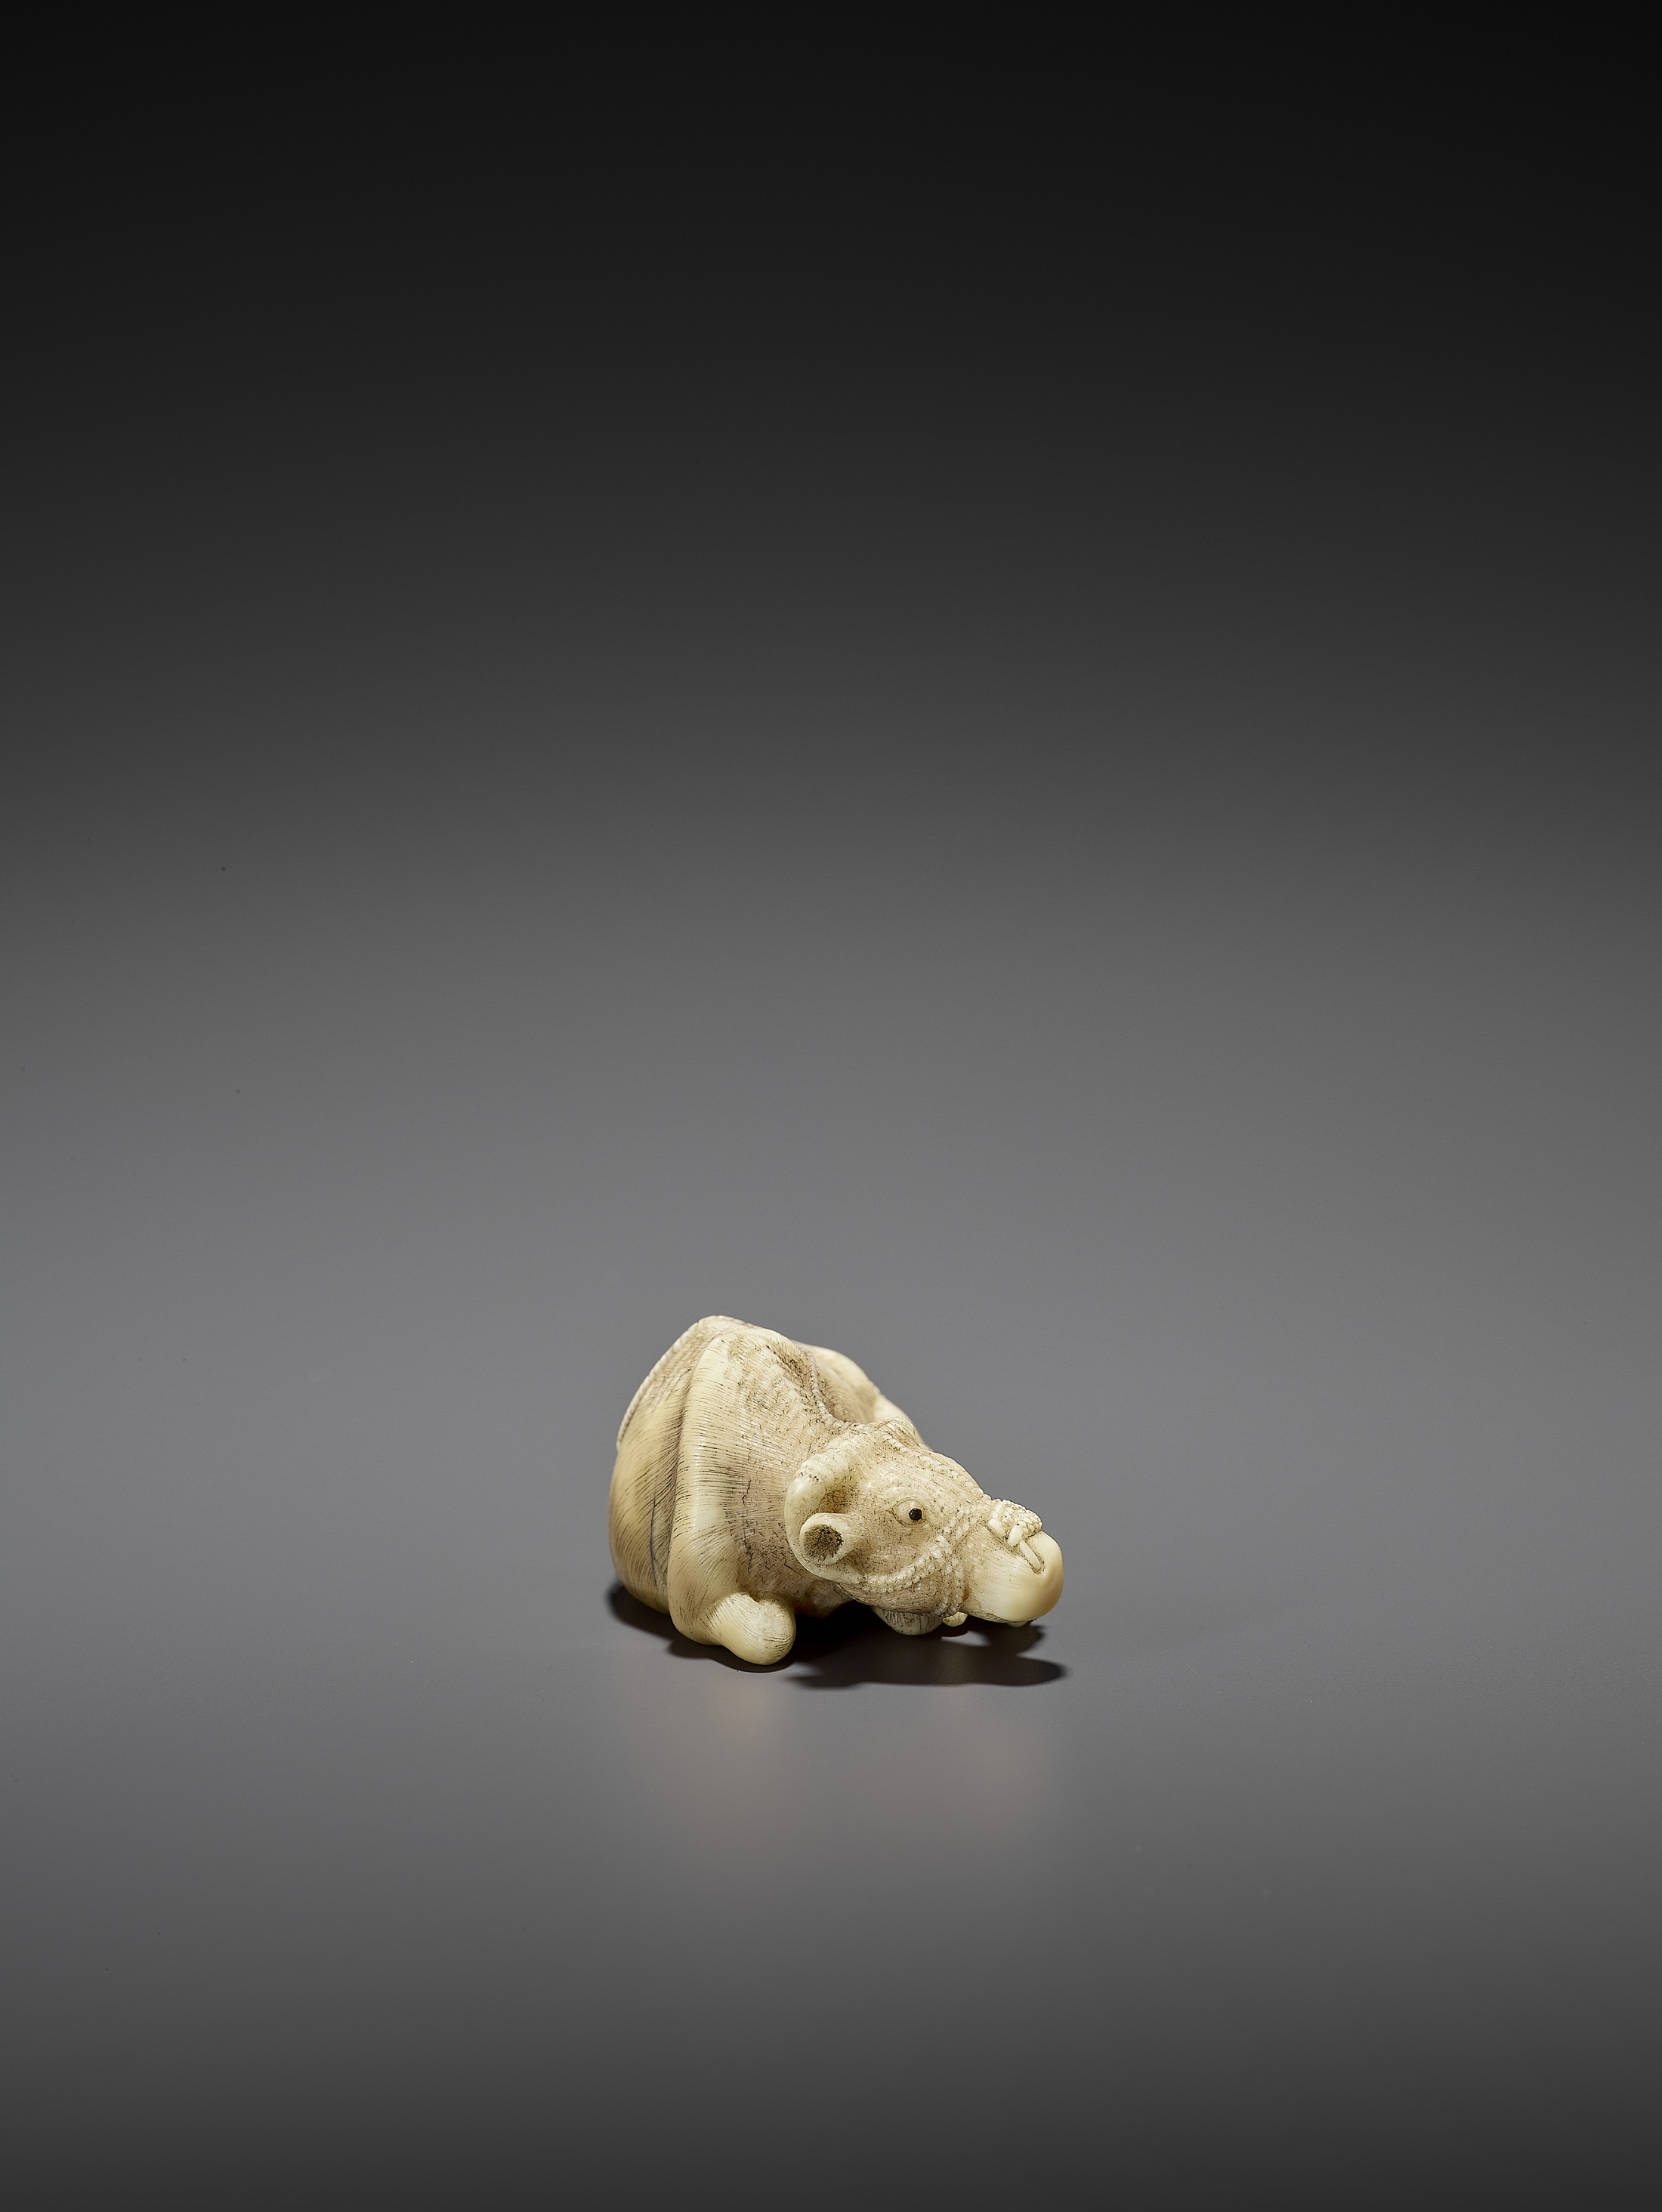 MITSUCHIKA: A LARGE AND RARE WALRUS IVORY NETSUKE OF A RECUMBENT COW WITH CALF - Image 2 of 3